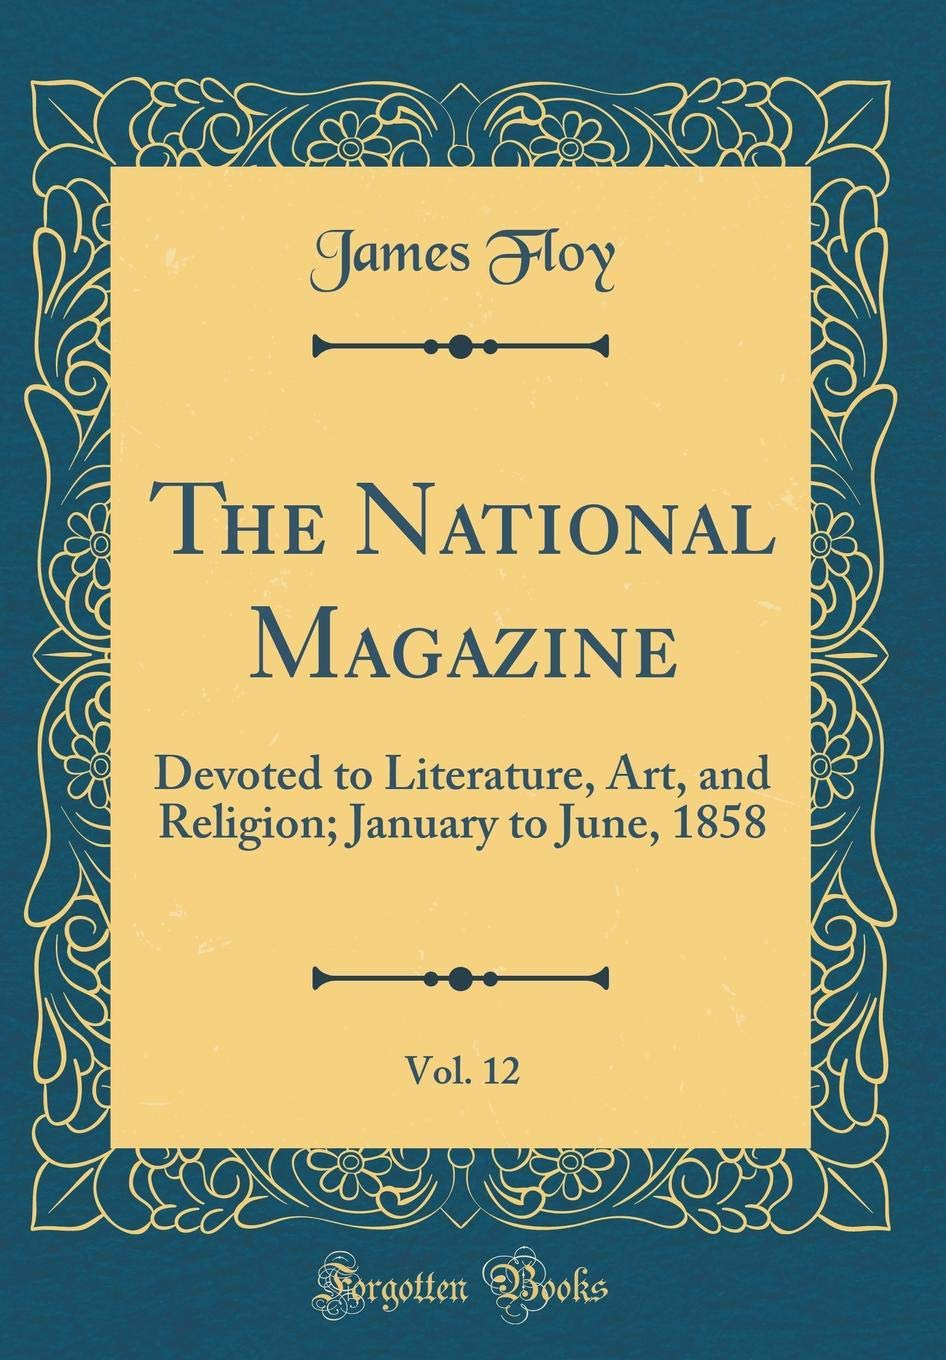 The National Magazine, Vol. 12: Devoted to Literature, Art, and Religion; January to June, 1858 (Classic Reprint) ebook